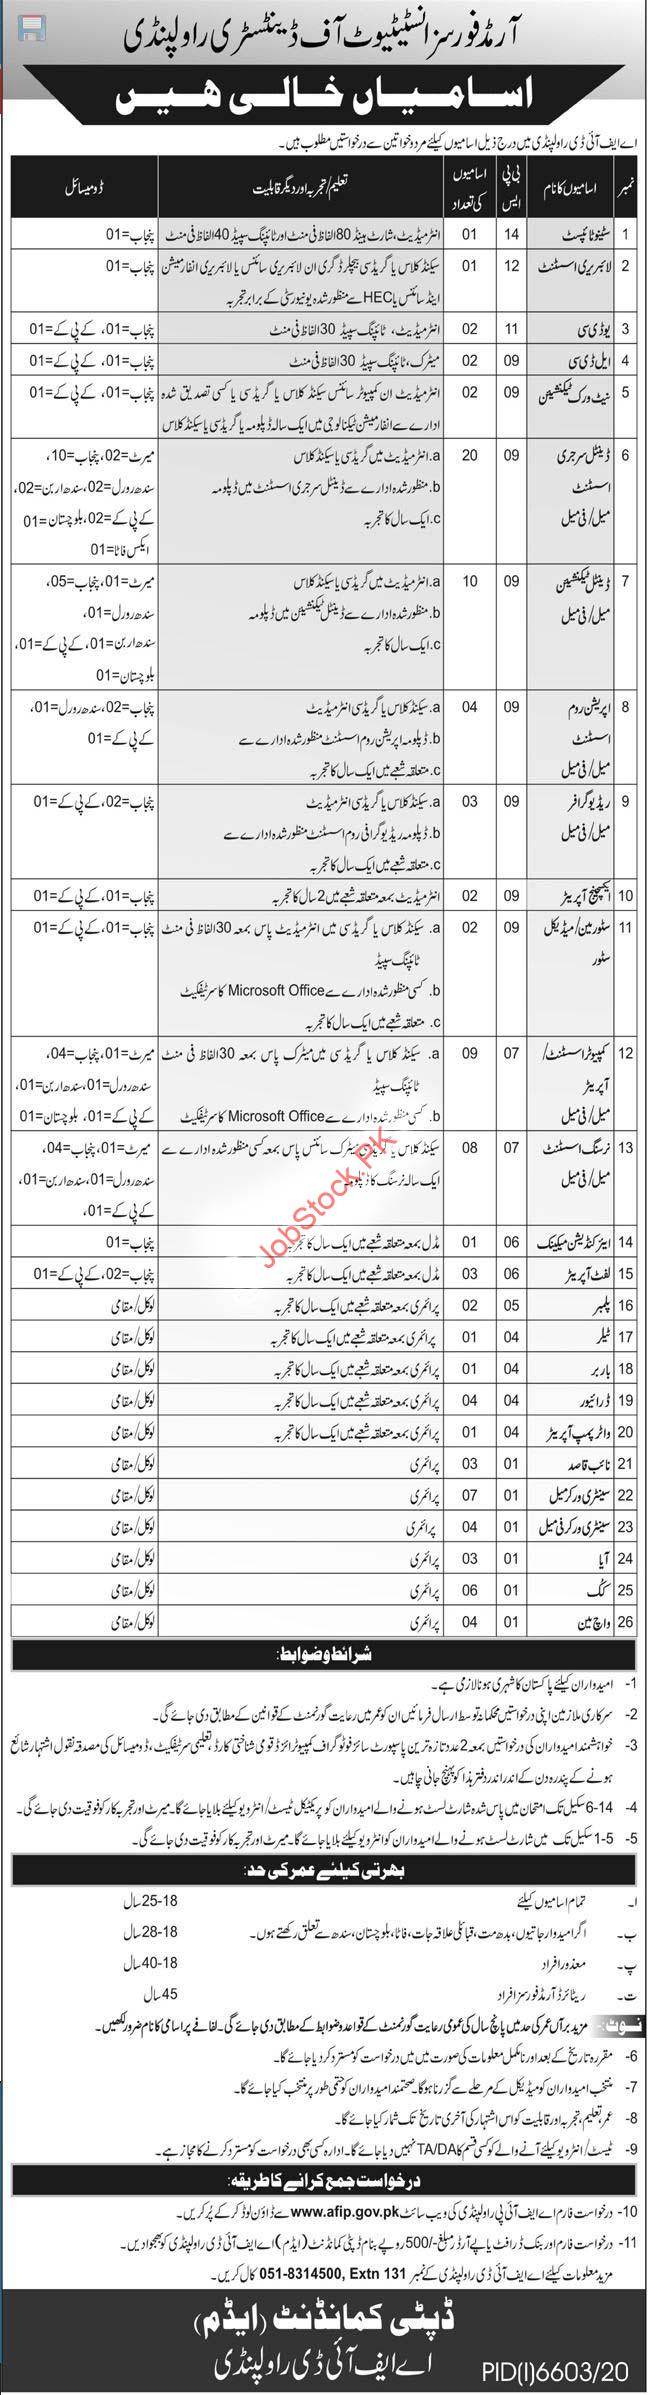 Armed Forces Institute Of Dentistry Rawalpindi Jobs 2021